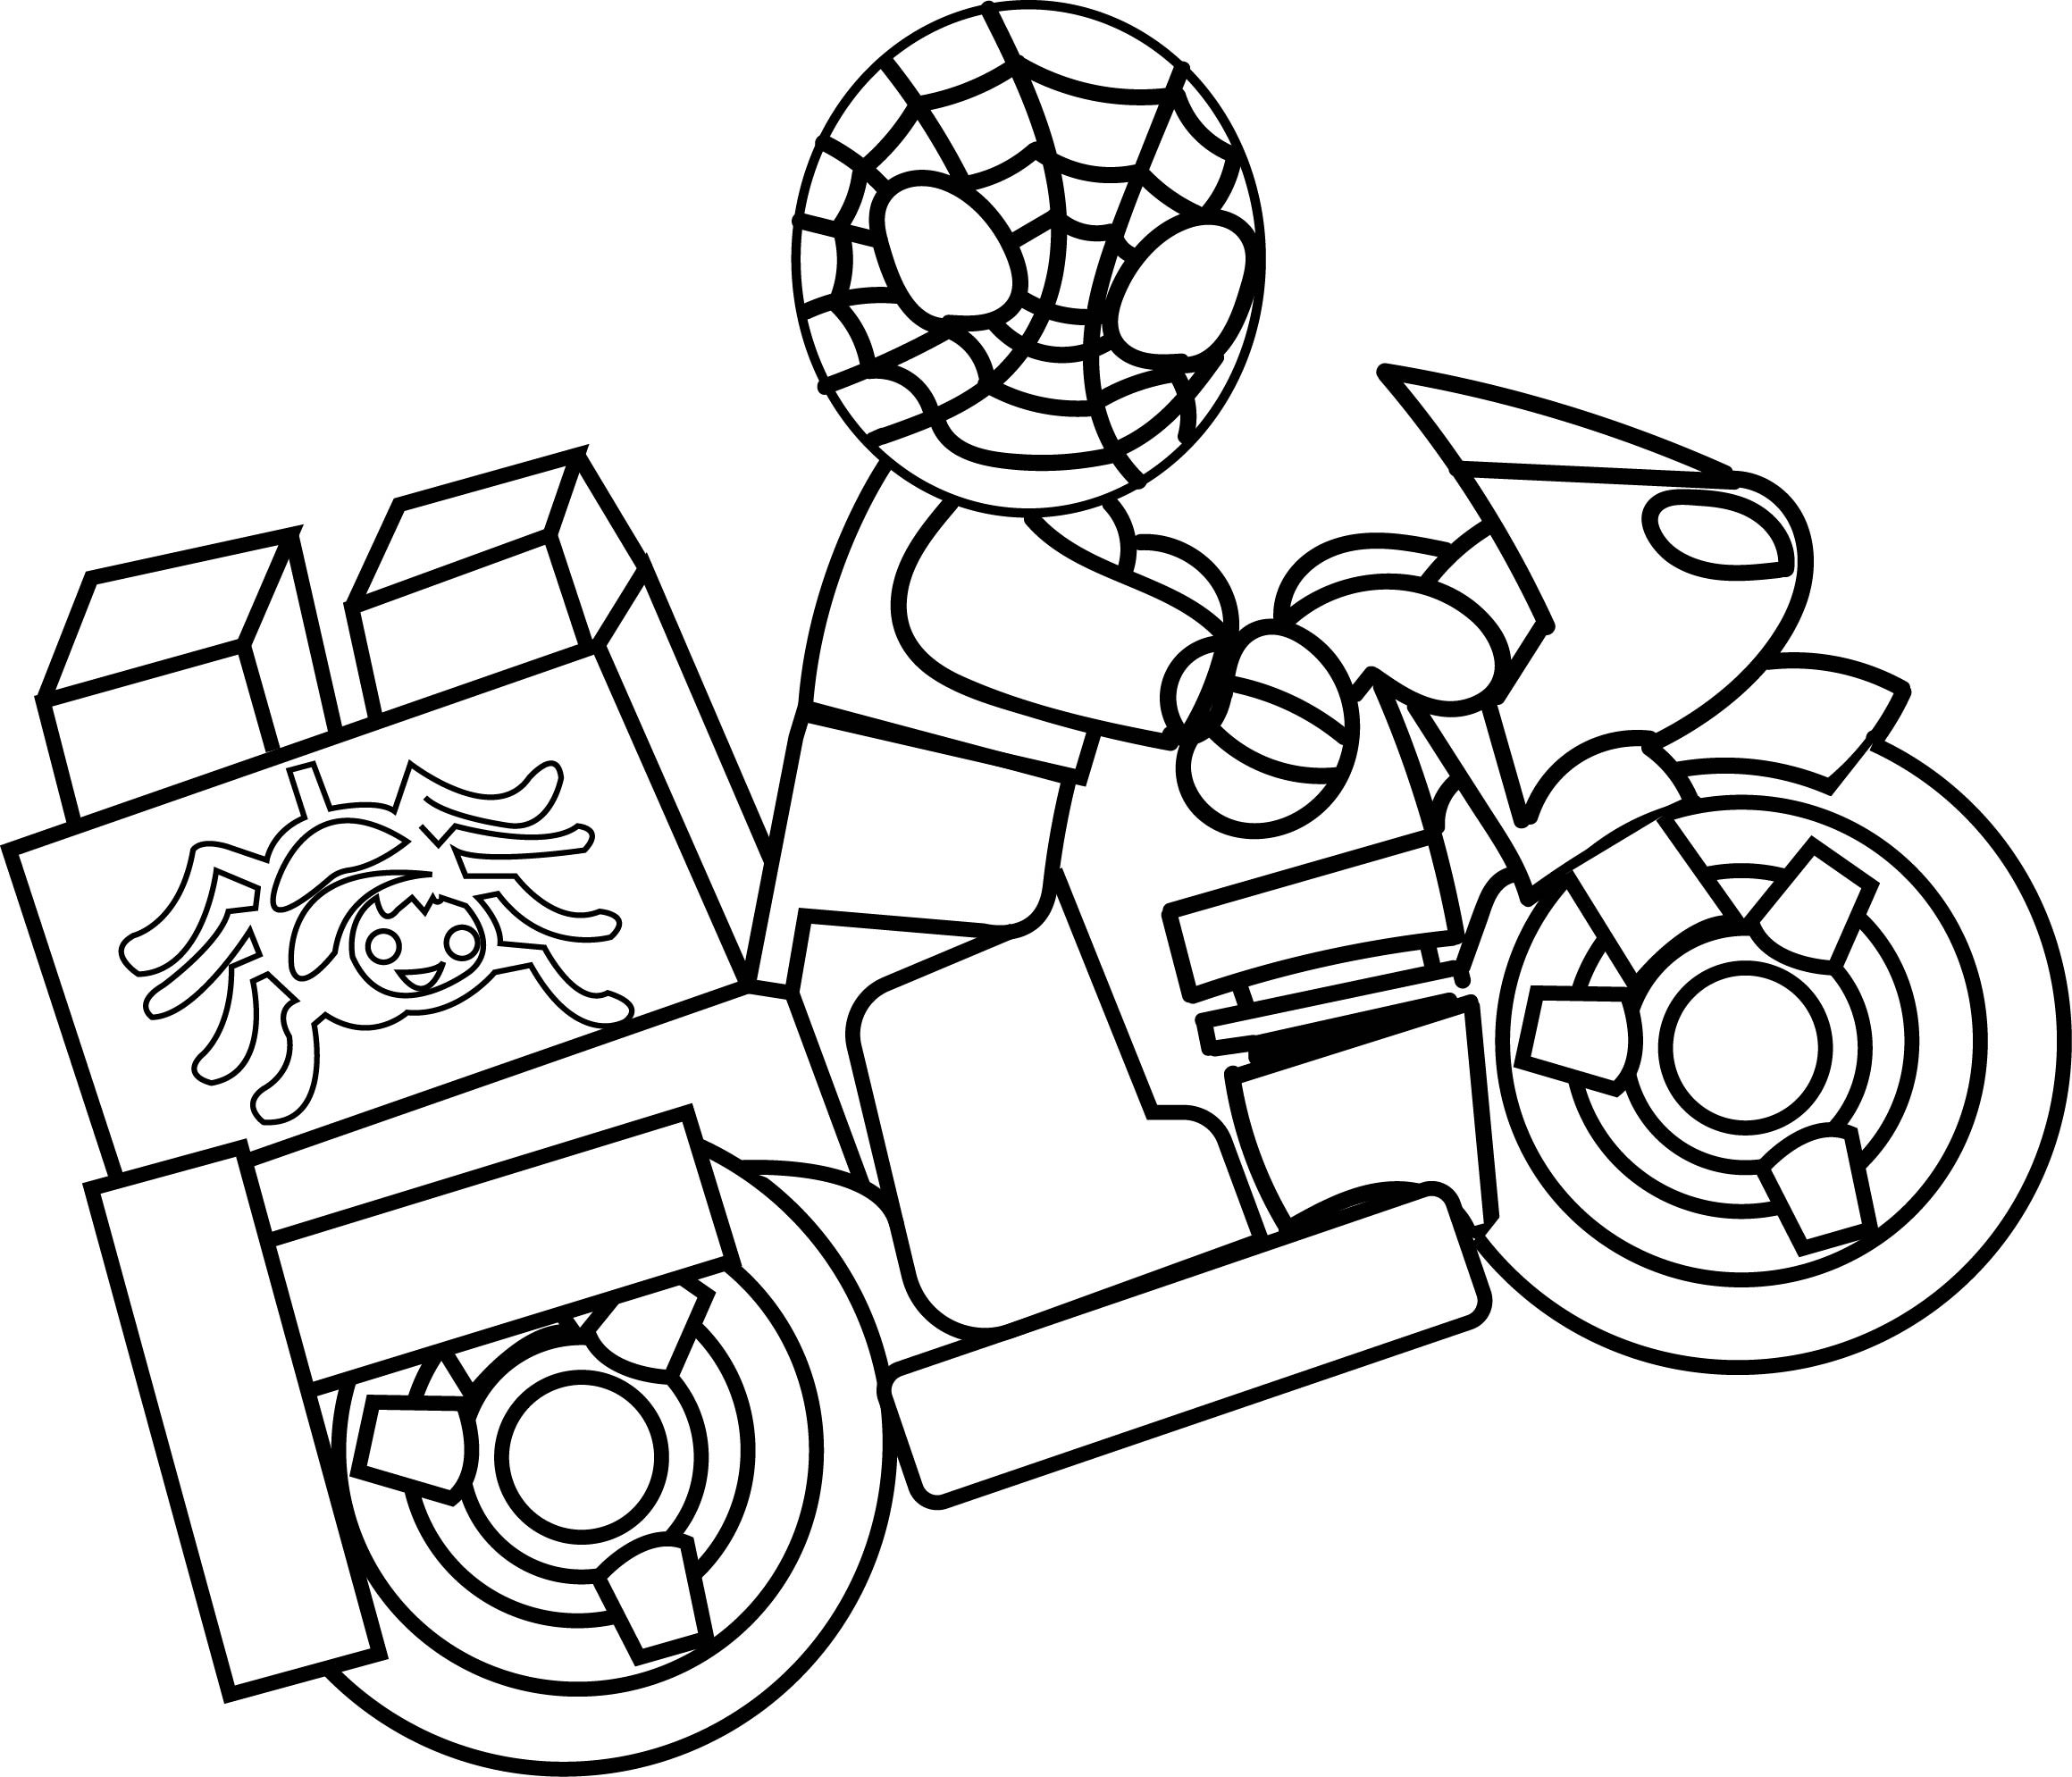 2319x1989 Lilo And Stitch On Bike Coloring Pages For Kids Inspirational